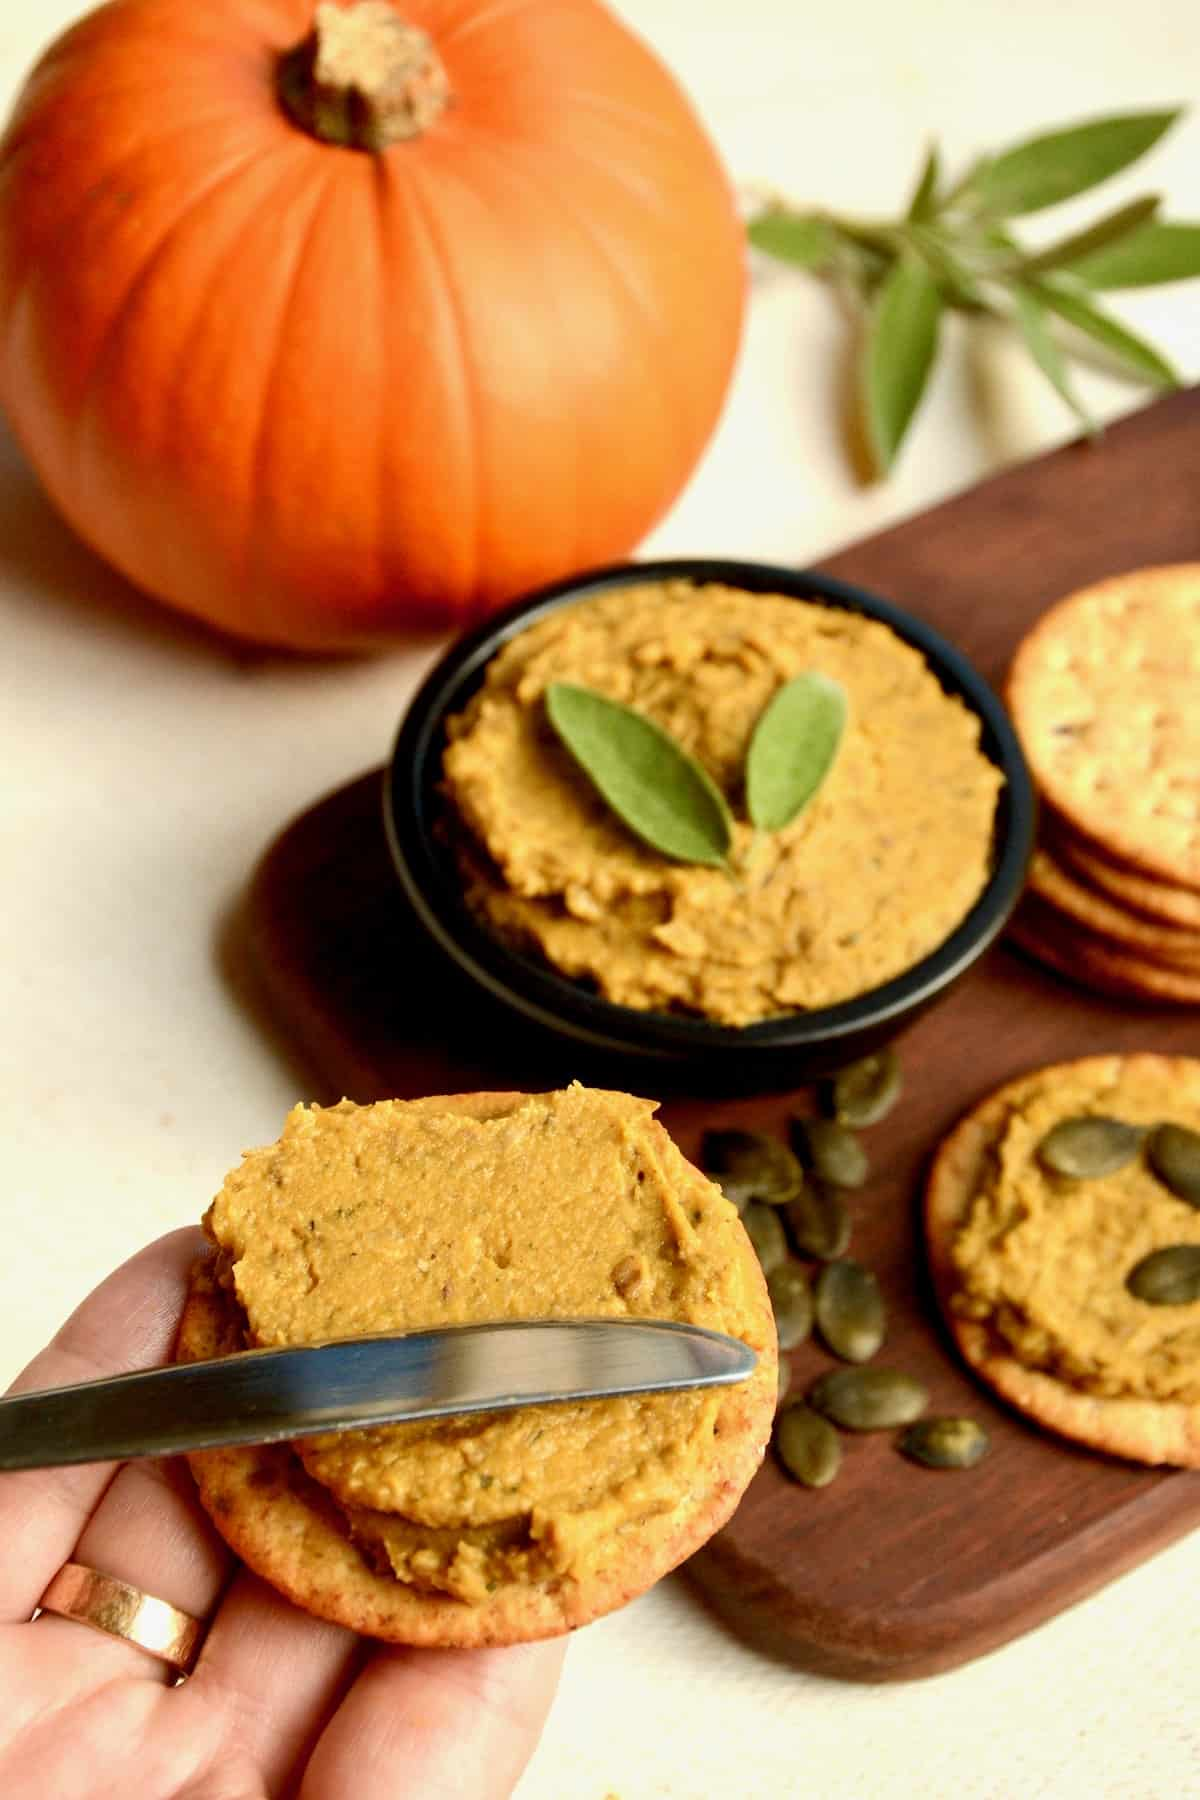 Spreading the pumpkin pate on a cracker.